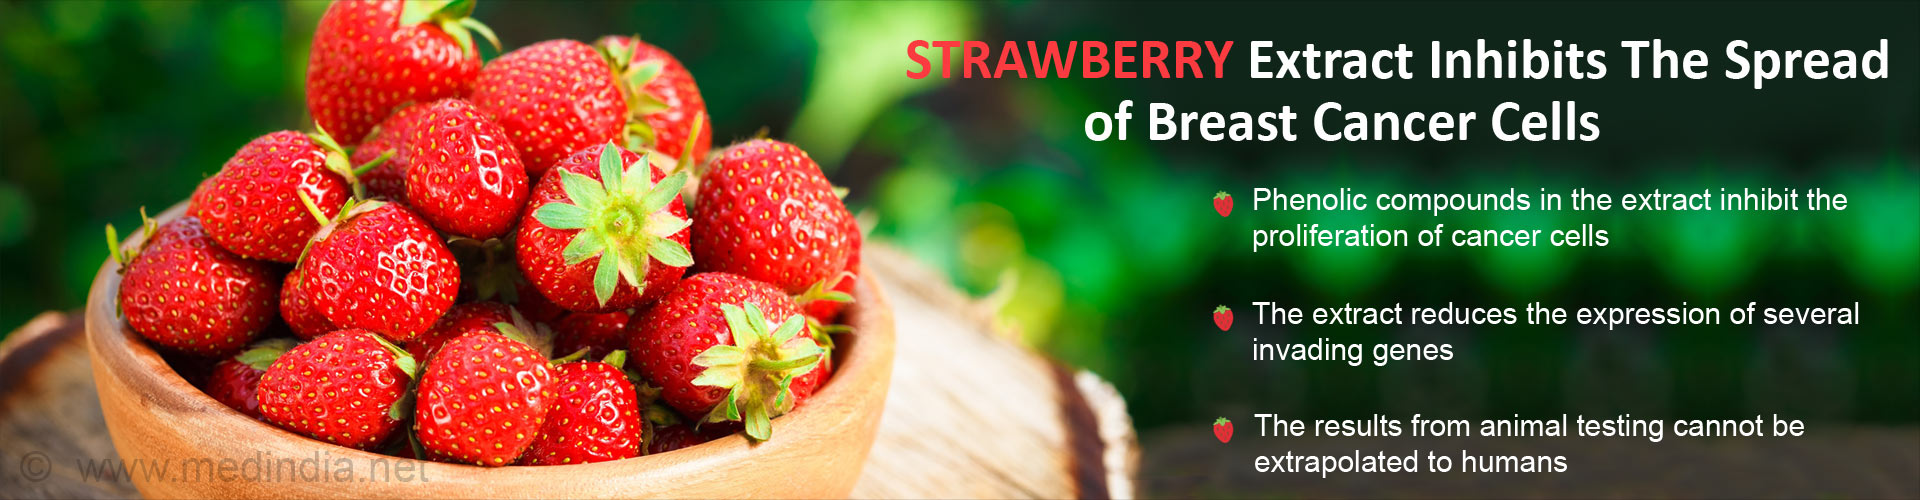 Strawberry Extract Halts Progression of Breast Cancer Cells